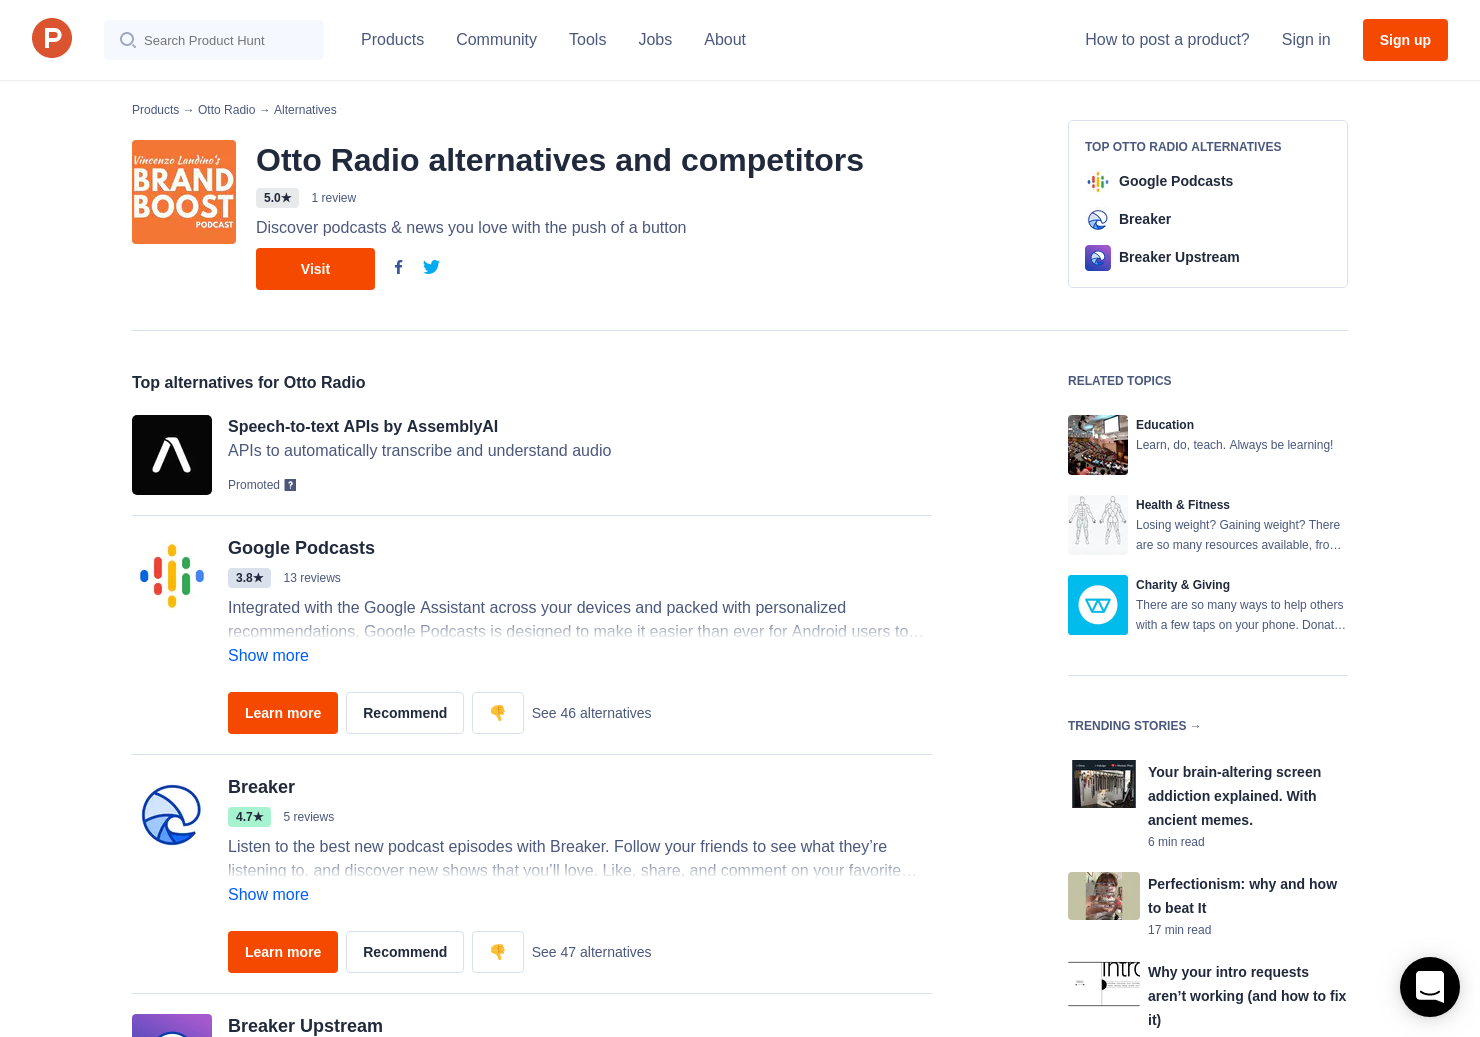 26 Alternatives to Otto Radio for iPhone   Product Hunt